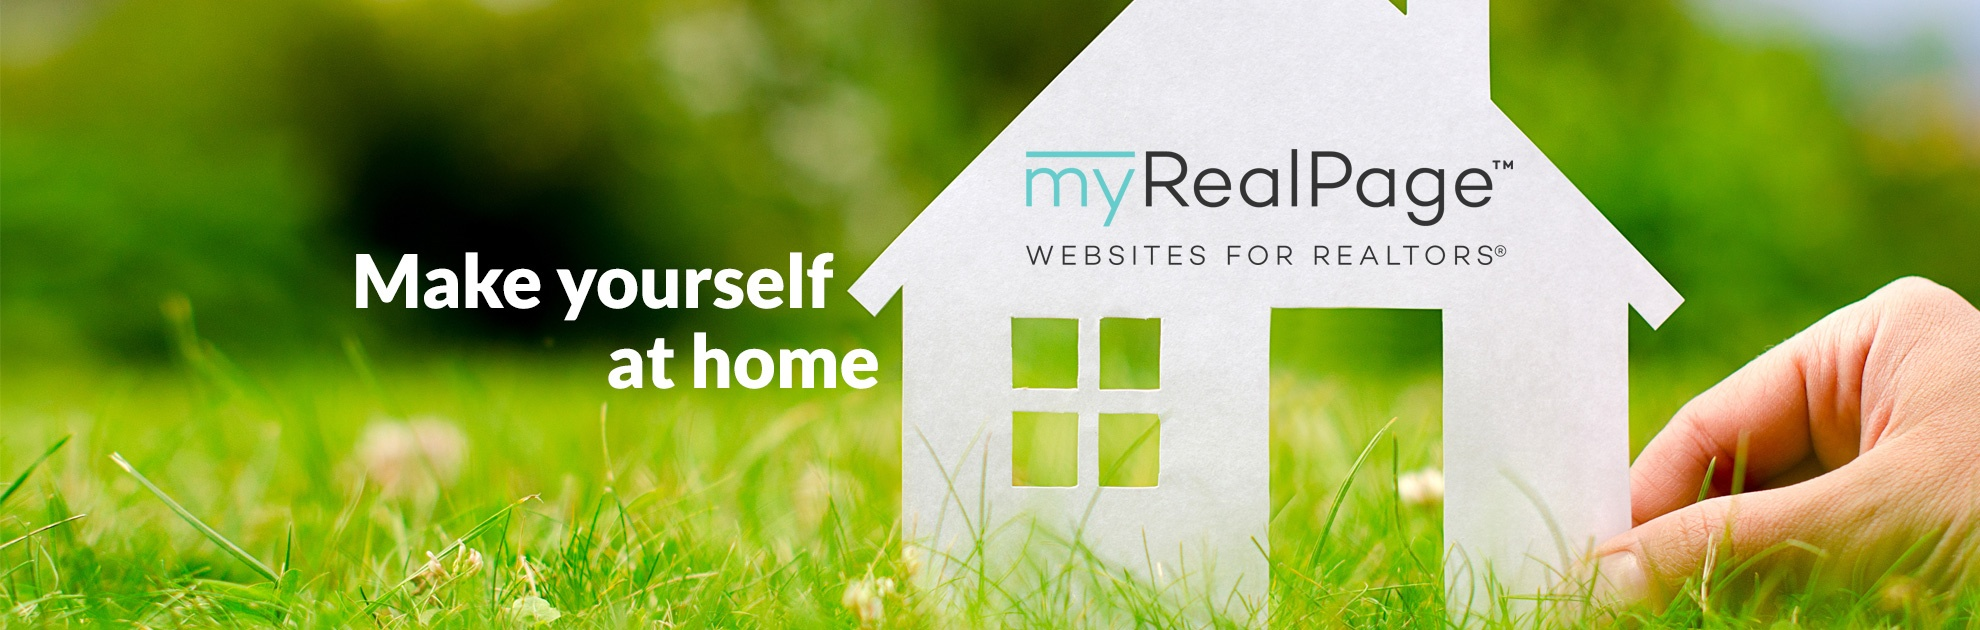 Sign up for a myRealPage website today!